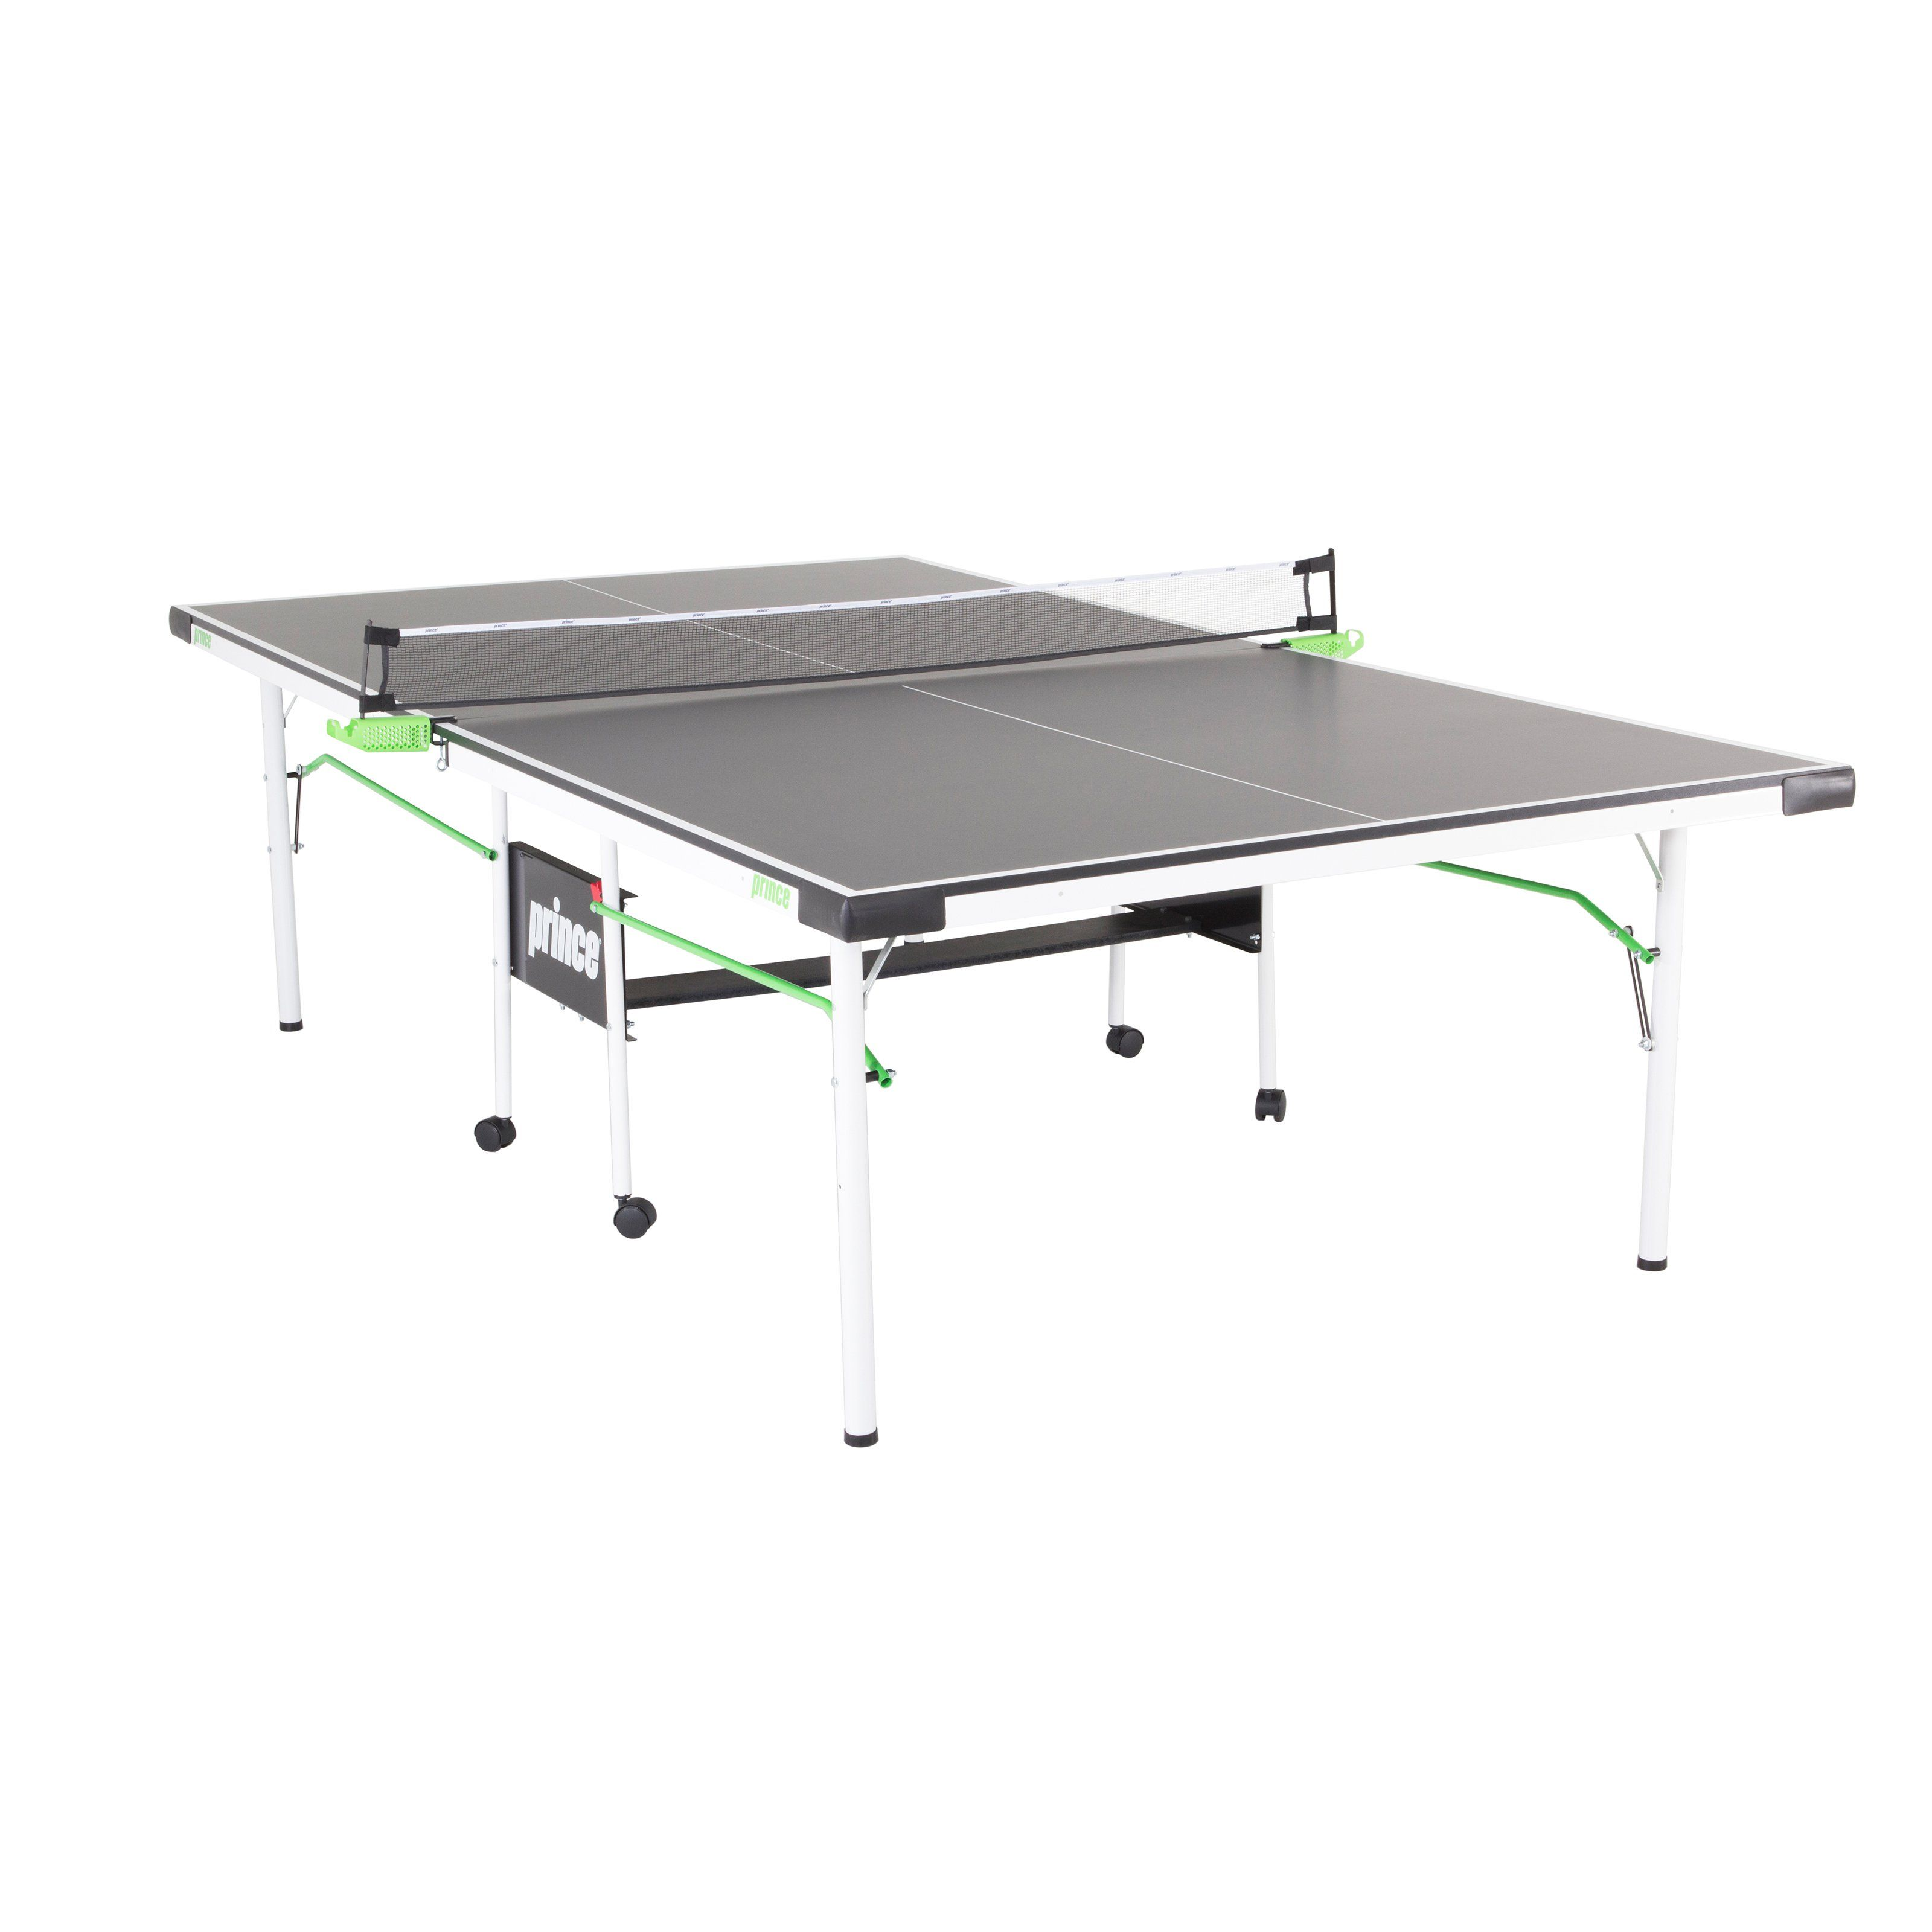 Prince Champ Table Tennis Table T8840 Table Tennis Outdoor